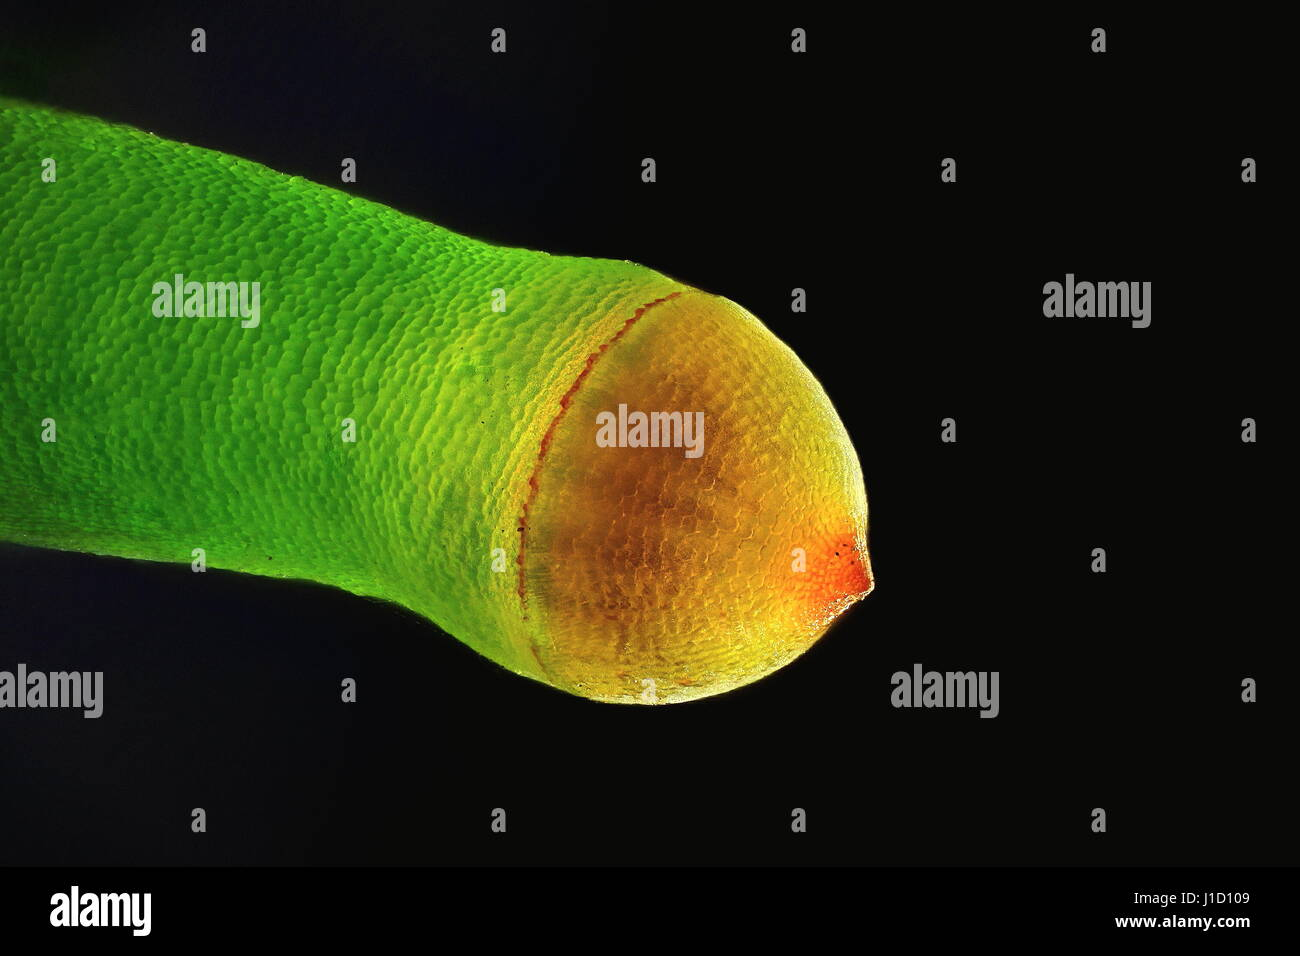 Spore capsule of Plagiomnium affine,  Many-fruited Thyme-moss, microscope image - Stock Image